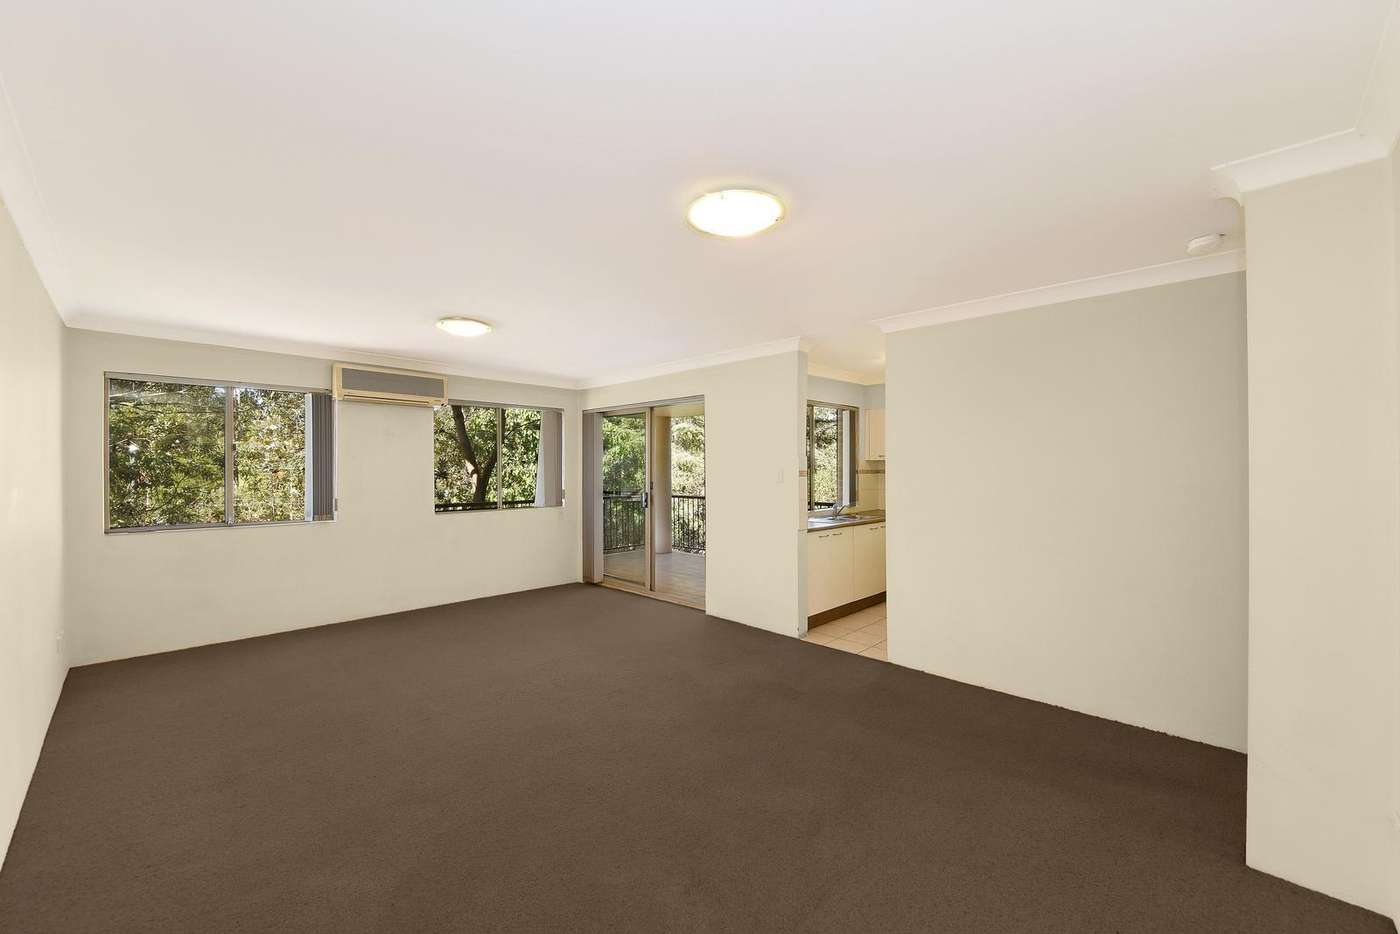 Main view of Homely apartment listing, 21/26 Linda Street, Hornsby NSW 2077